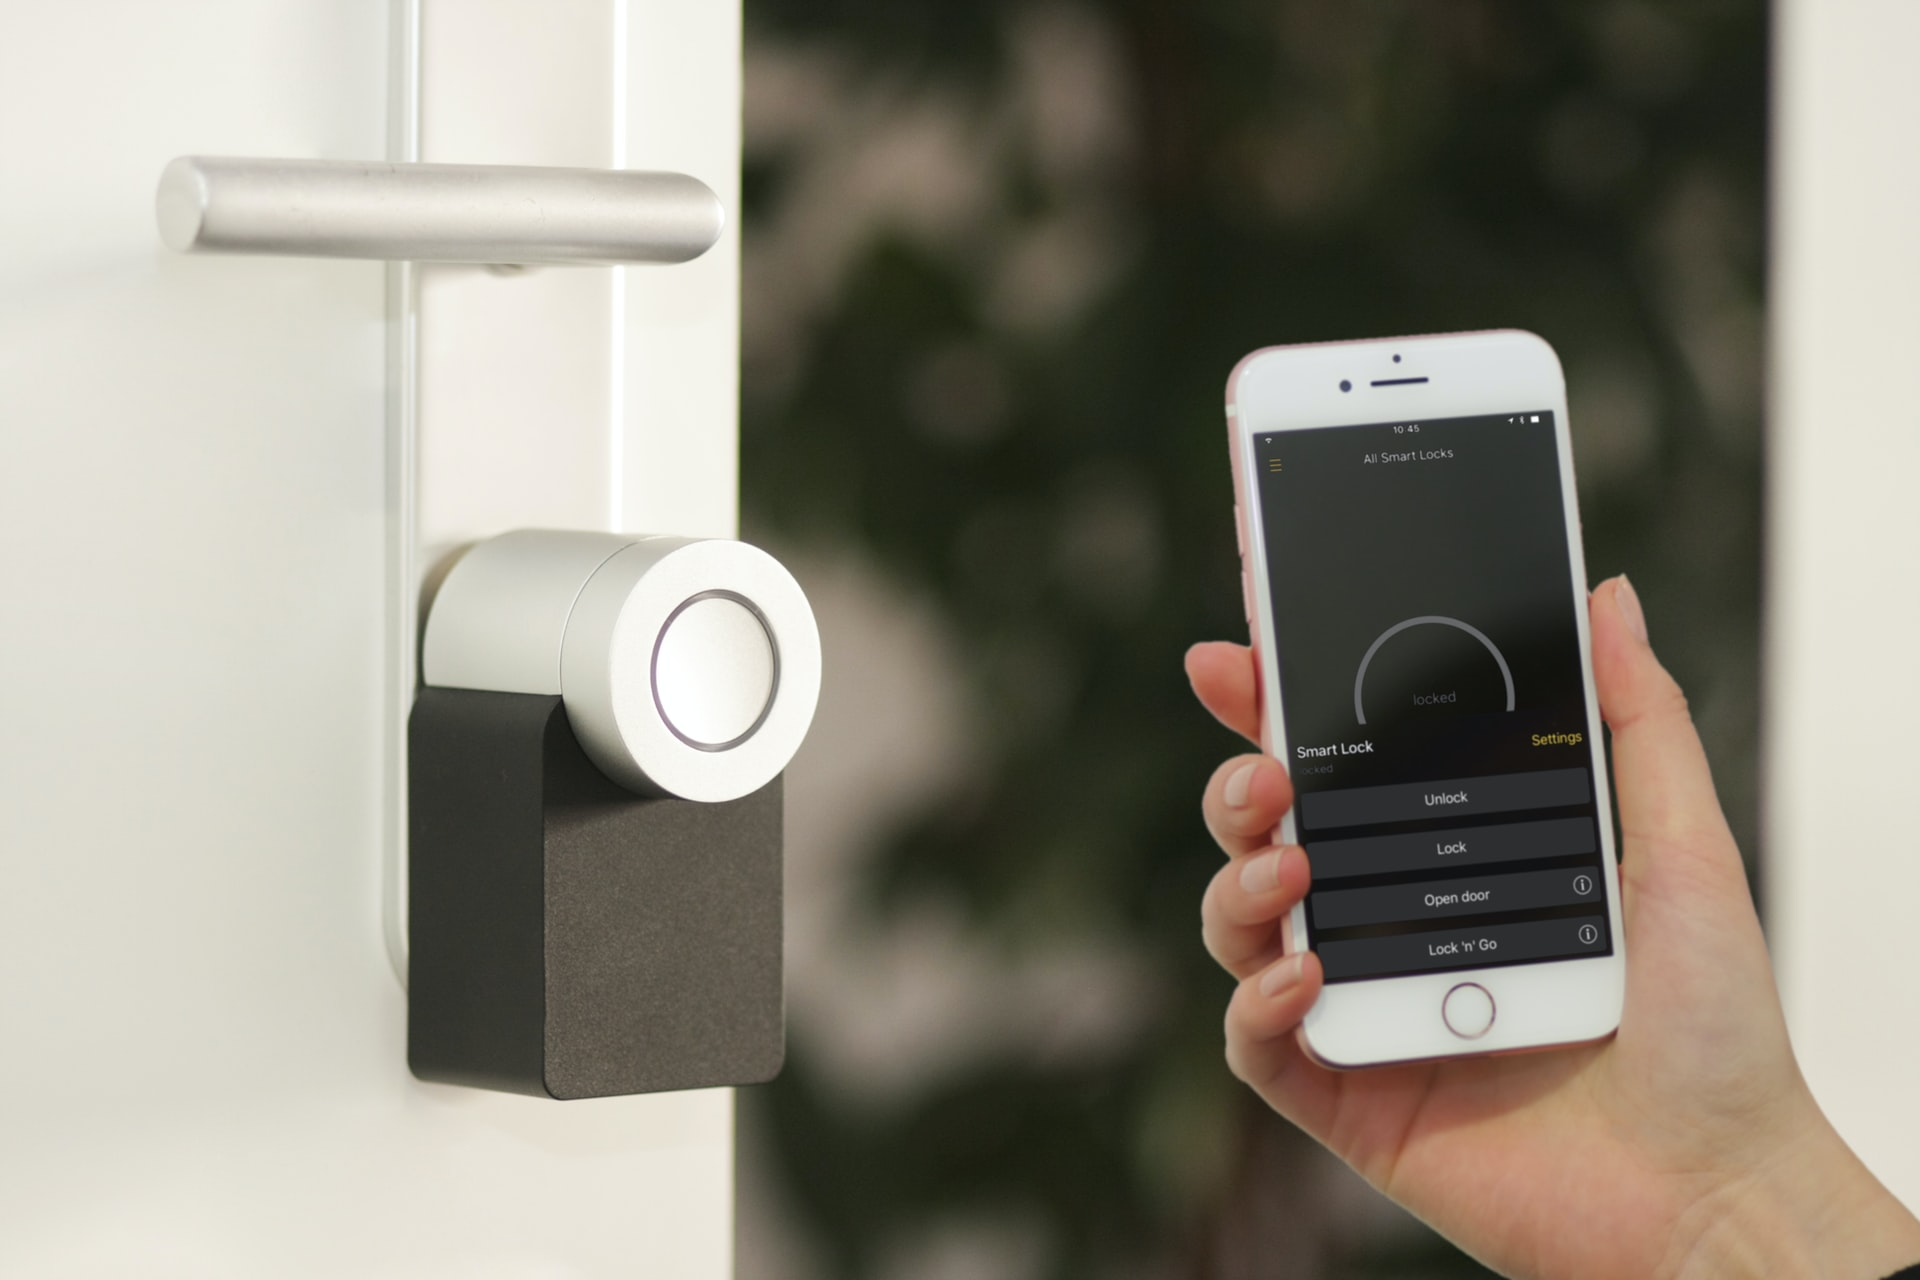 04_A smart lock checking in with smartphone